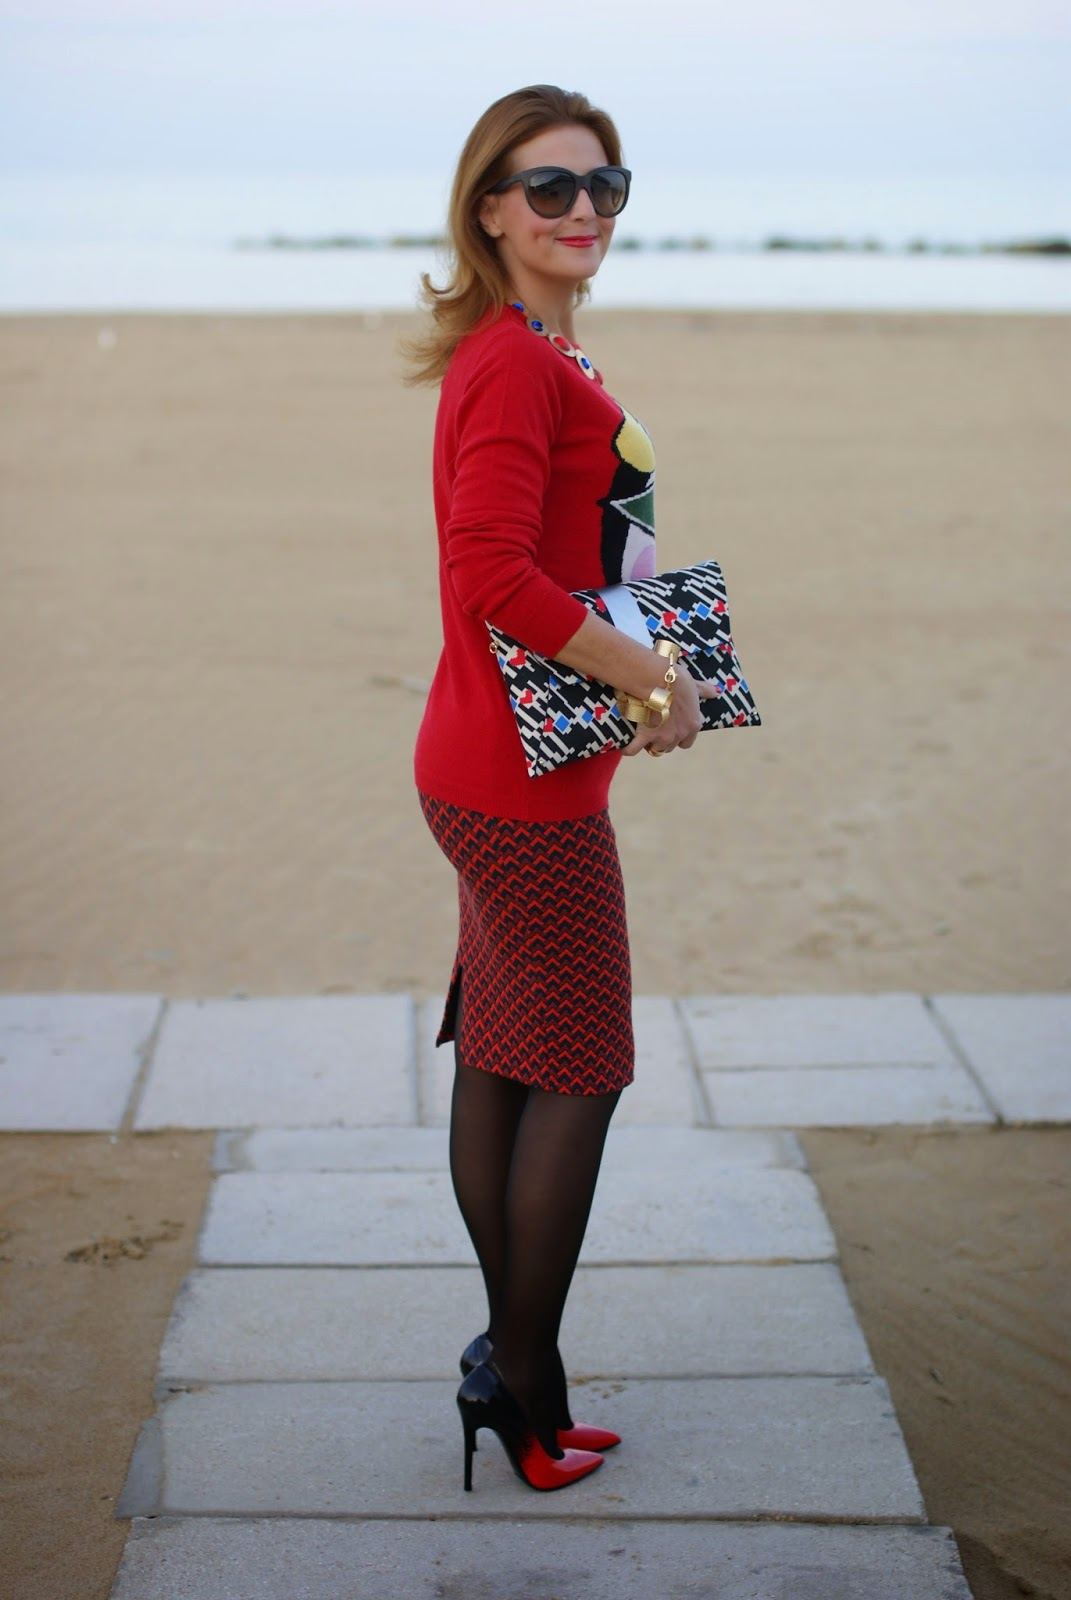 pencil skirt with sheer stockings and stiletto pumps, Fashion and Cookies, fashion blogger